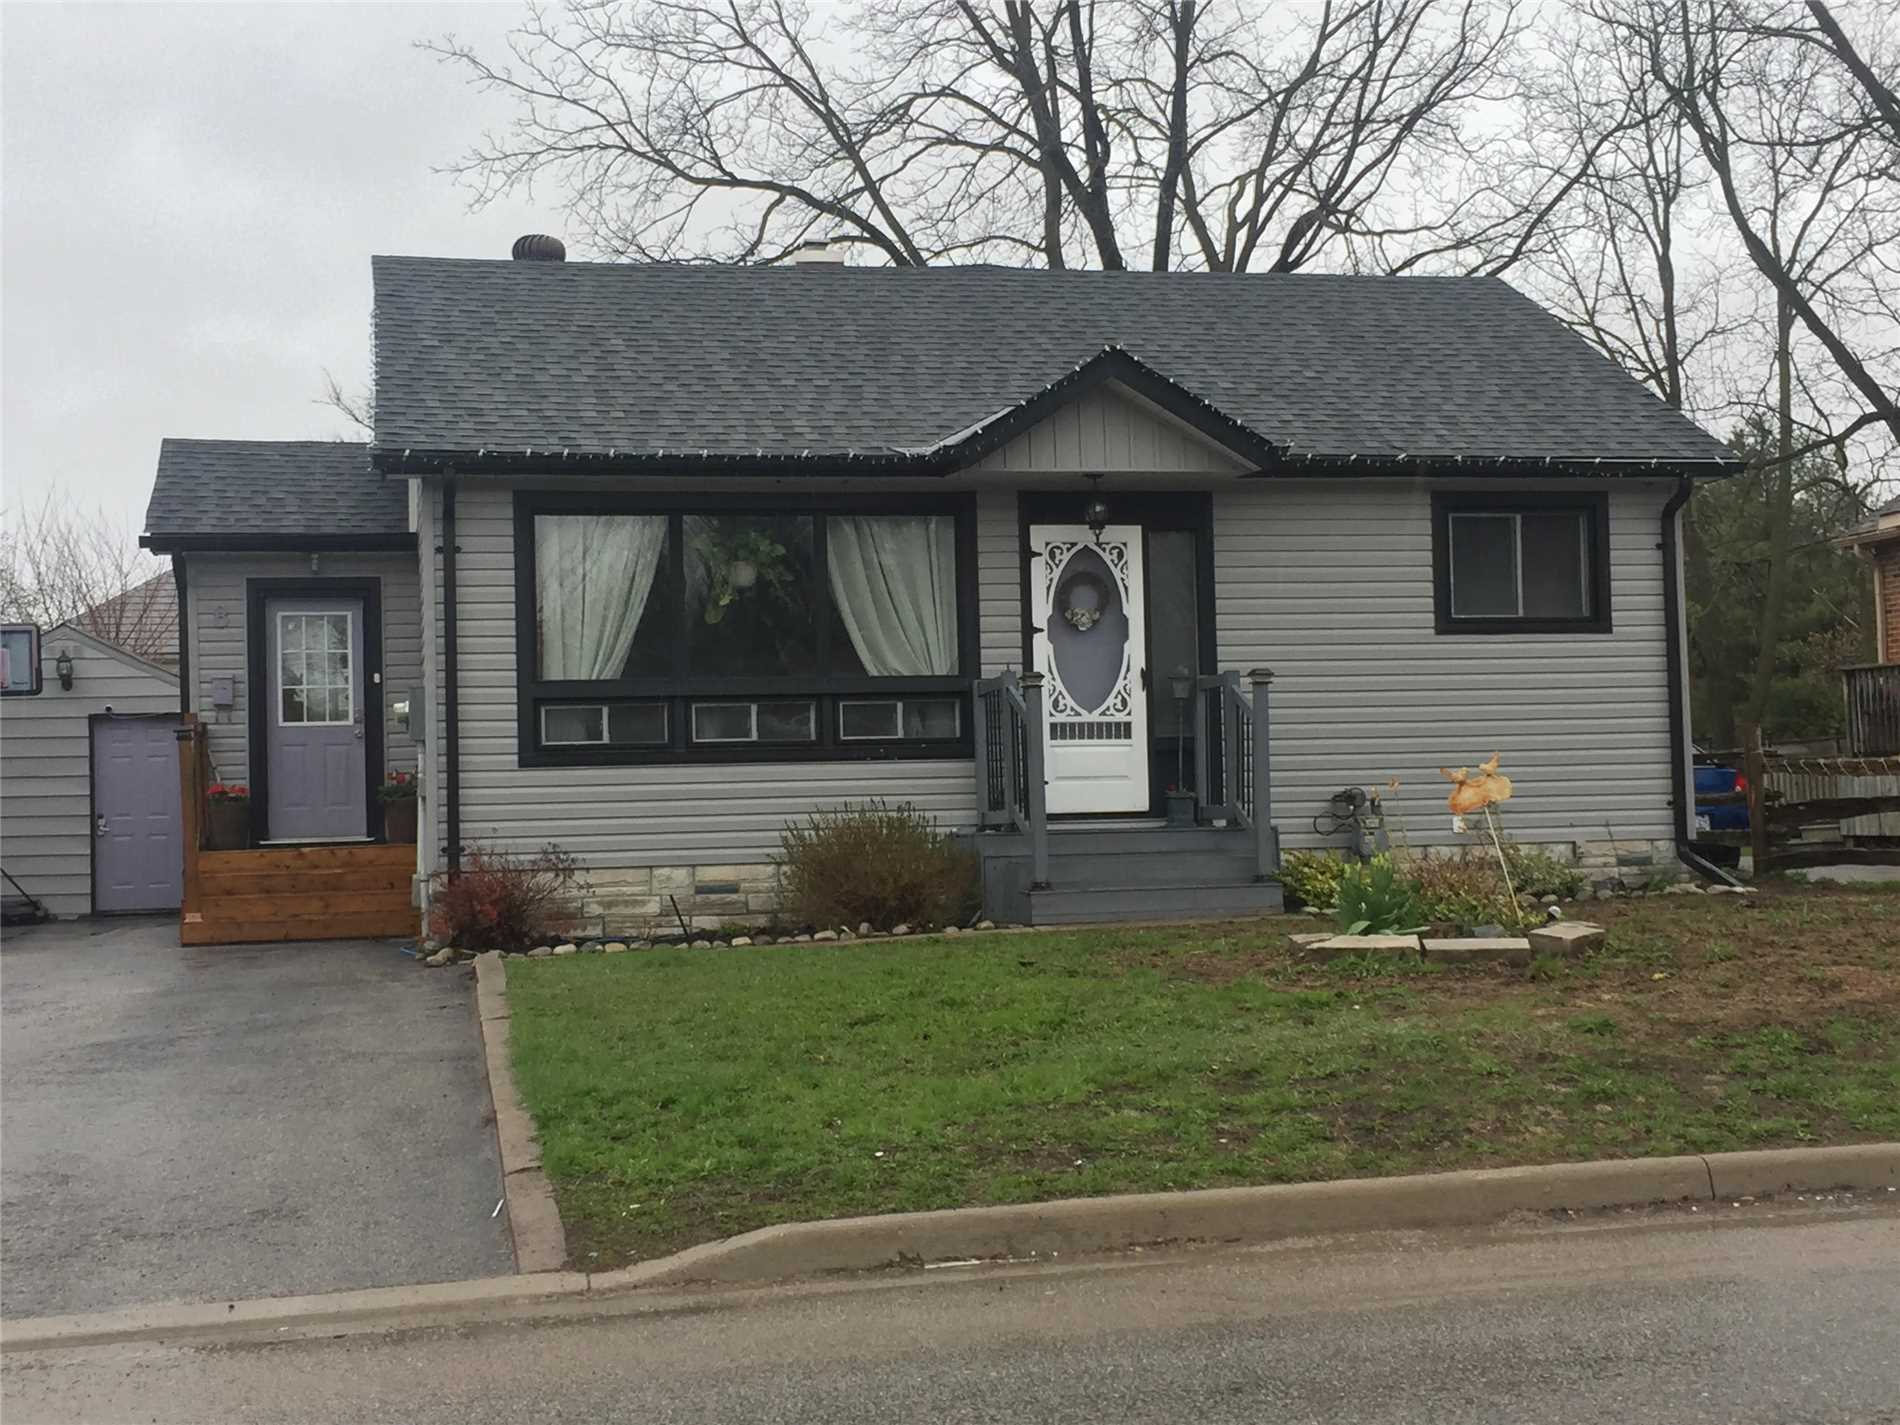 Looking For A Charming Bungalow Close To All Things Barrie Has To Offer? Look No Further. This Maintenance Free 1100 + Sq. Ft. Home In The Heart Of The City Is Looking For Its New Family. Modern Kitchen With Lots Of Cabinets, Large Living Room Perfect For Entertaining, Over Sized Bedrooms, Finished Basement With 4th Bedroom And Rec Room. This Home Also Features A Heated Garage, Mostly Fenced In Yard And Newer Roof.  Priced To Sell.